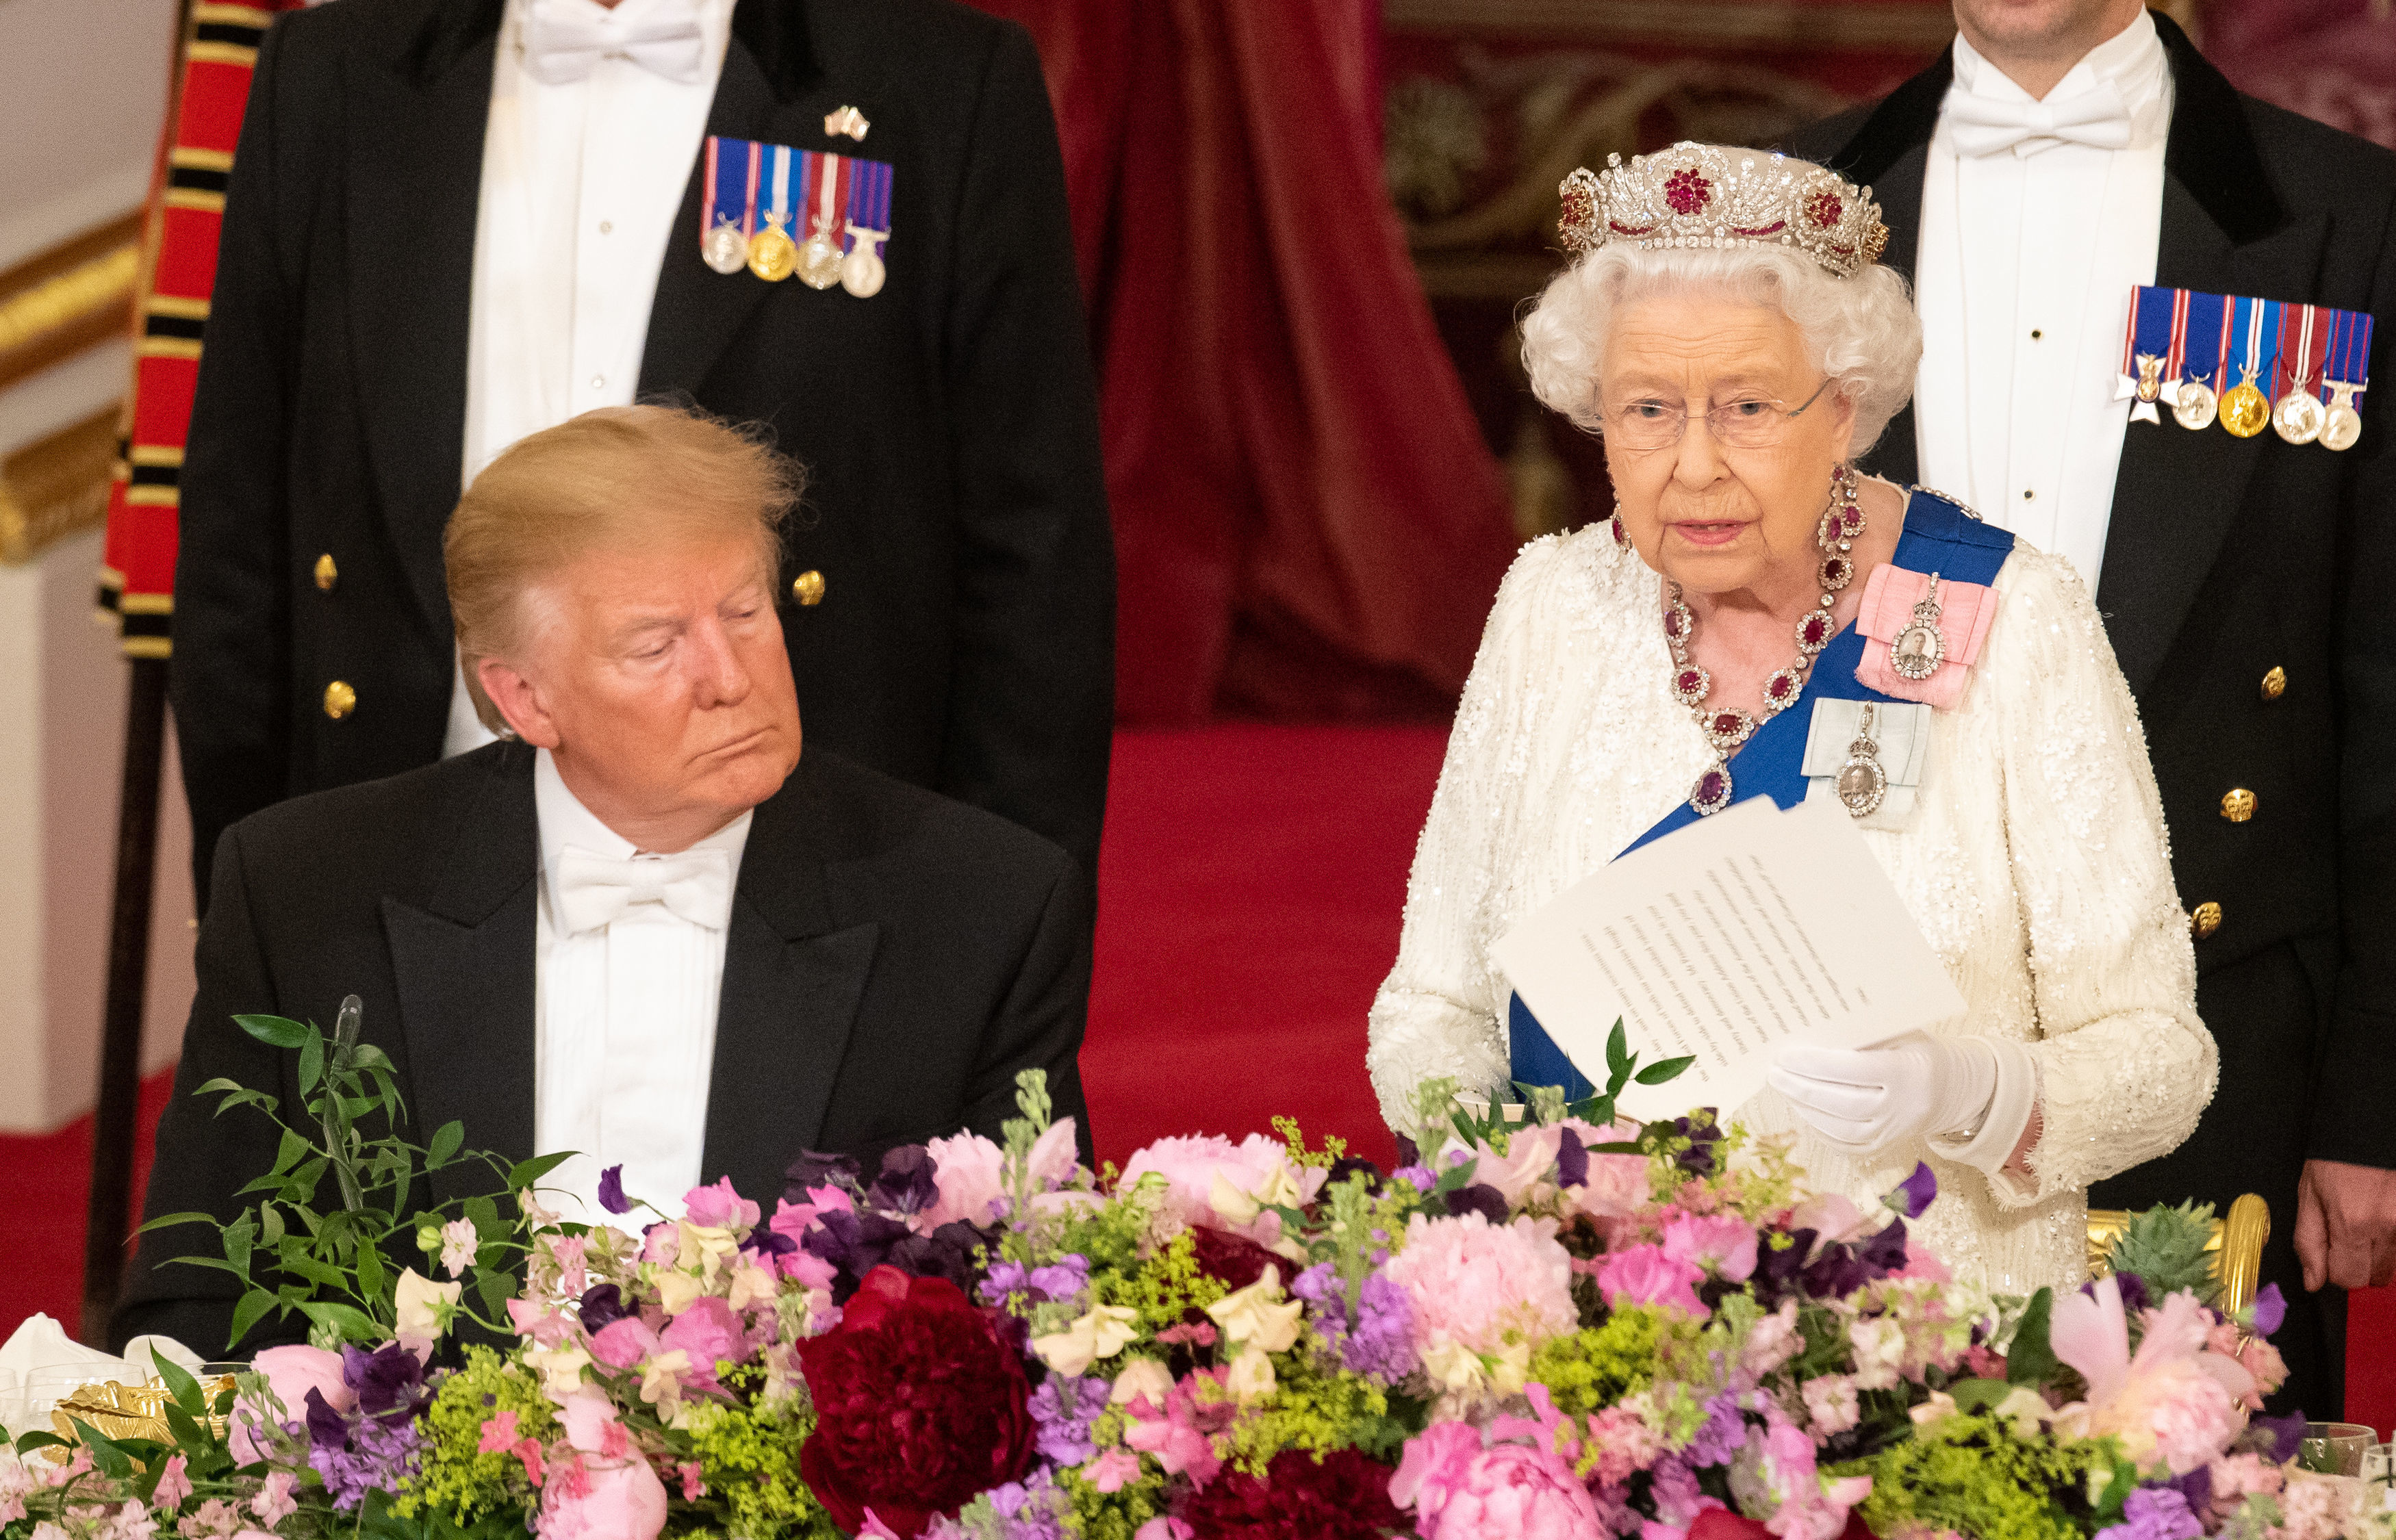 Donald Trump appeared to have a little micro-sleep during the Queen's speech. Credit: PA